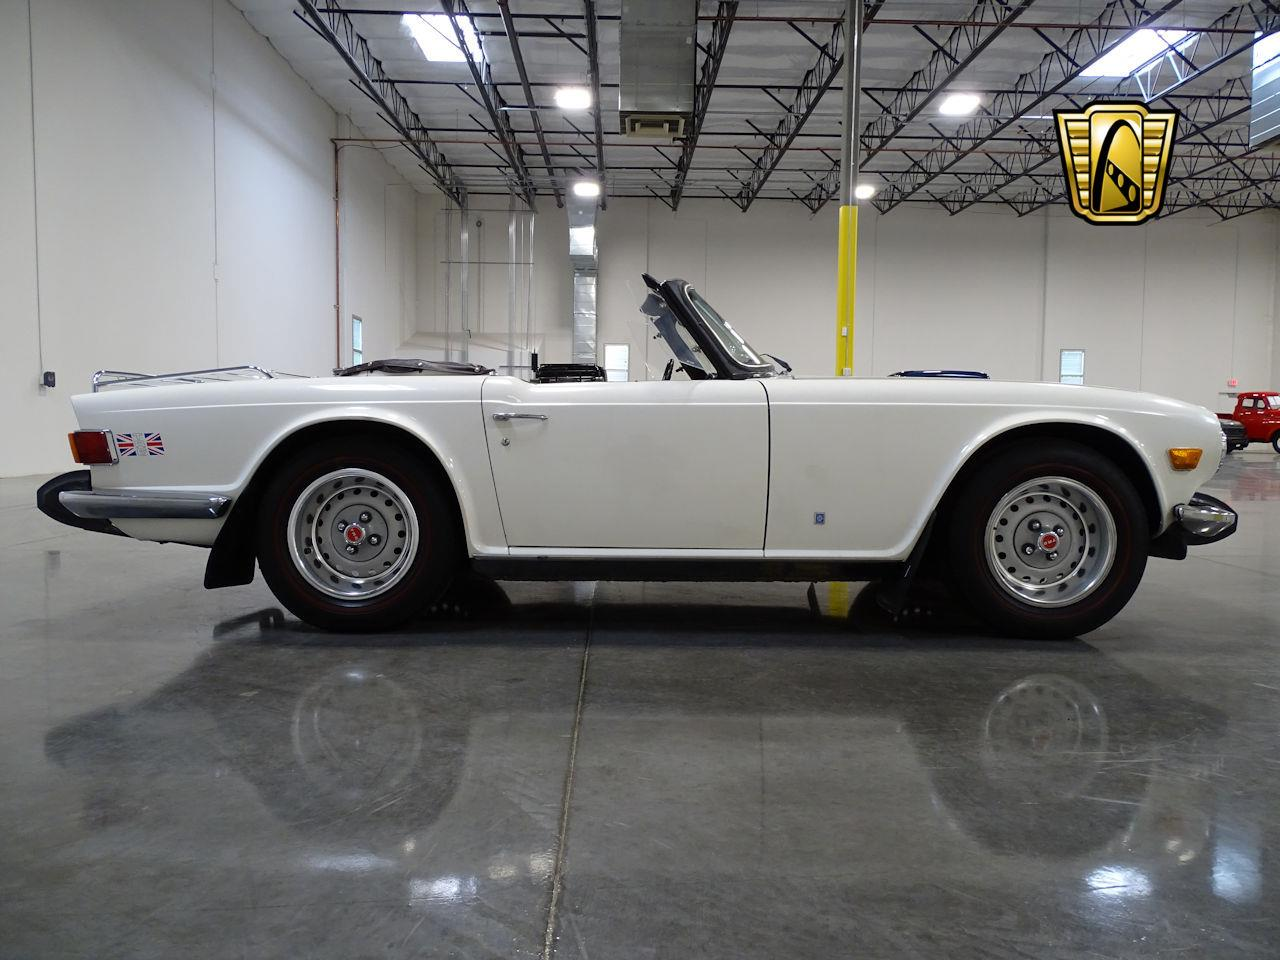 Large Picture of 1974 Triumph TR6 located in Deer Valley Arizona - $18,995.00 Offered by Gateway Classic Cars - Scottsdale - MCYM